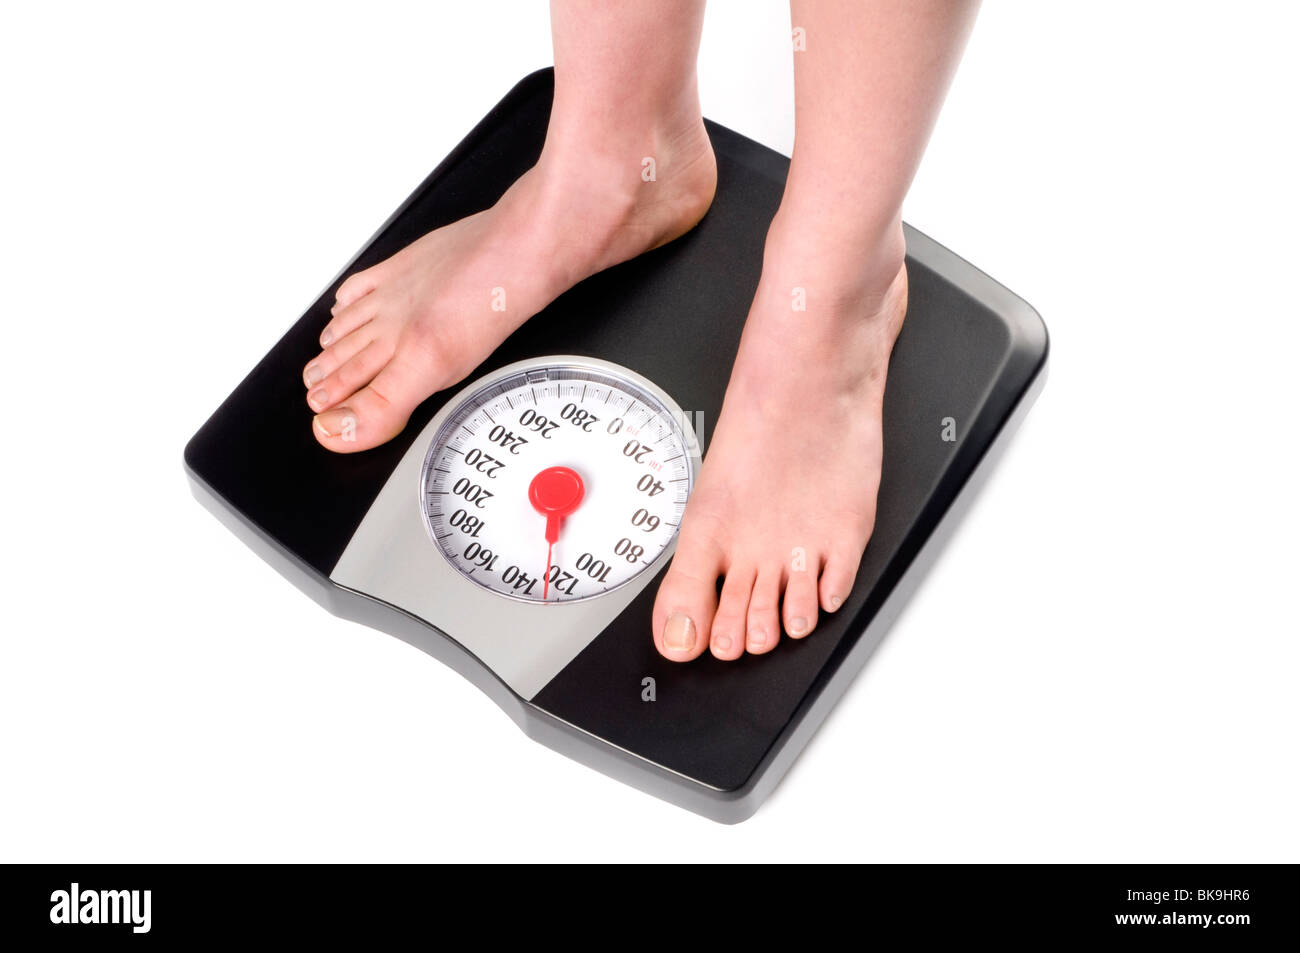 feet standing on weight scale - Stock Image